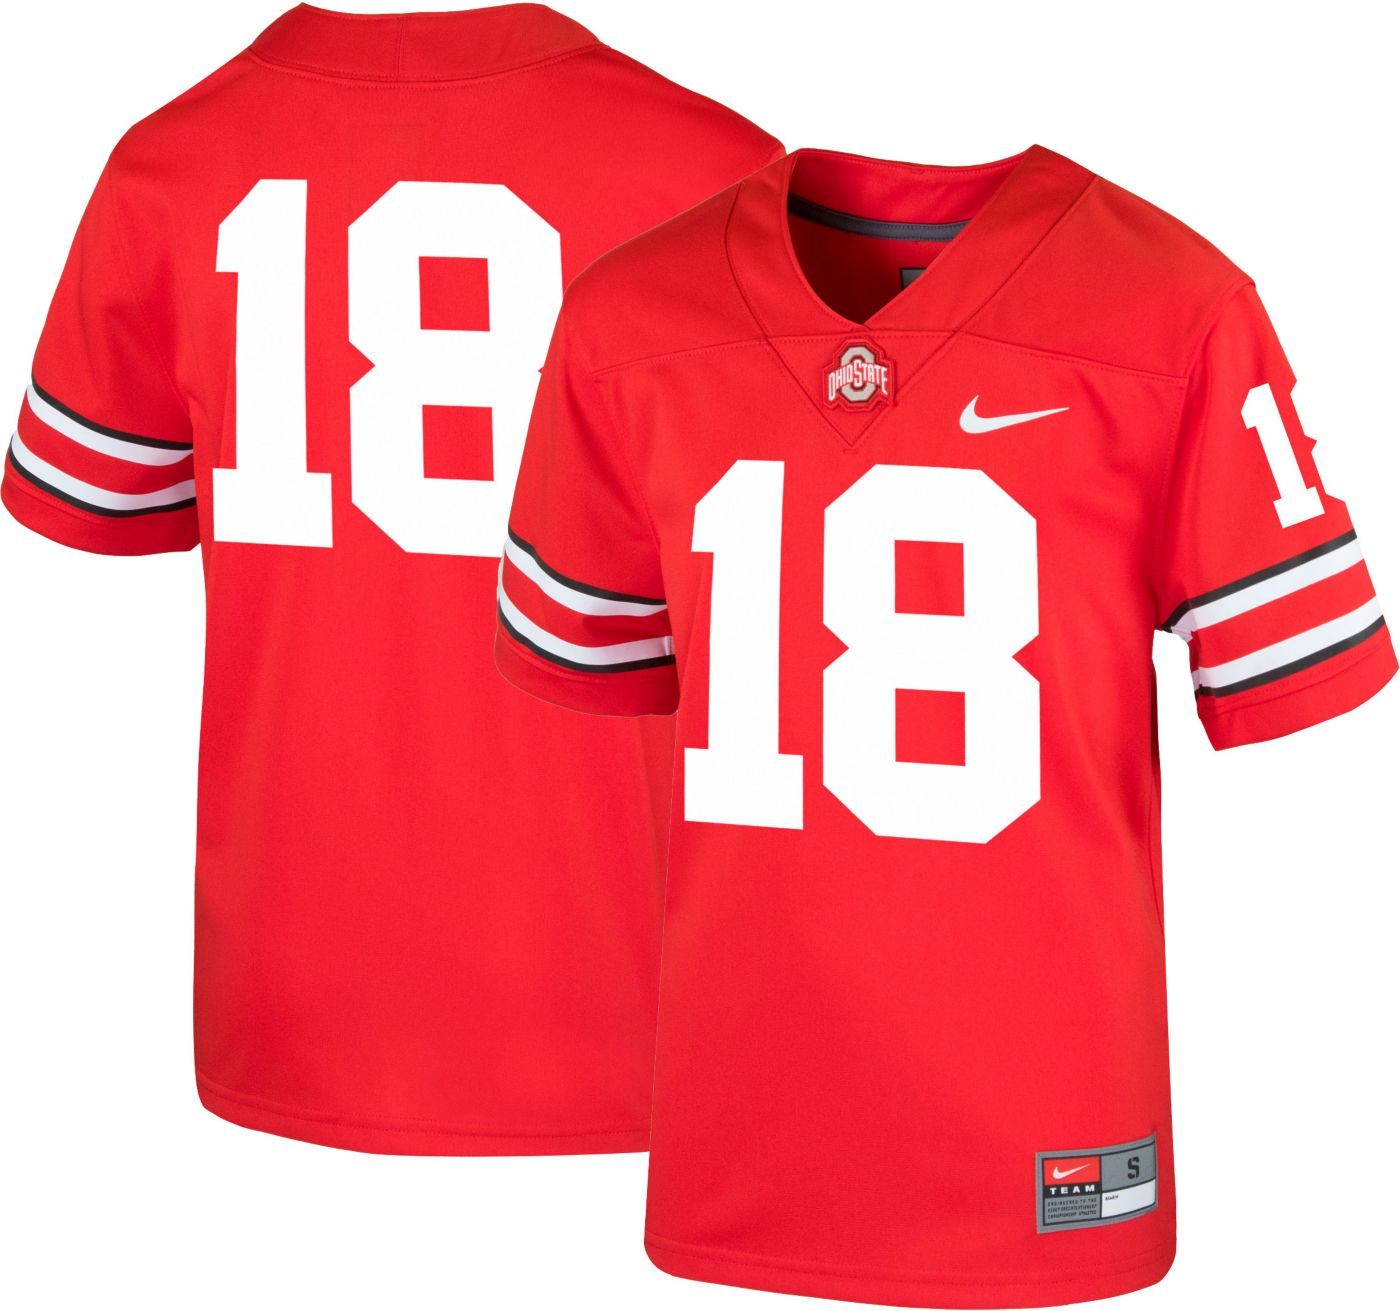 Nike Youth Ohio State Buckeyes #18 Scarlet Game Football Jersey